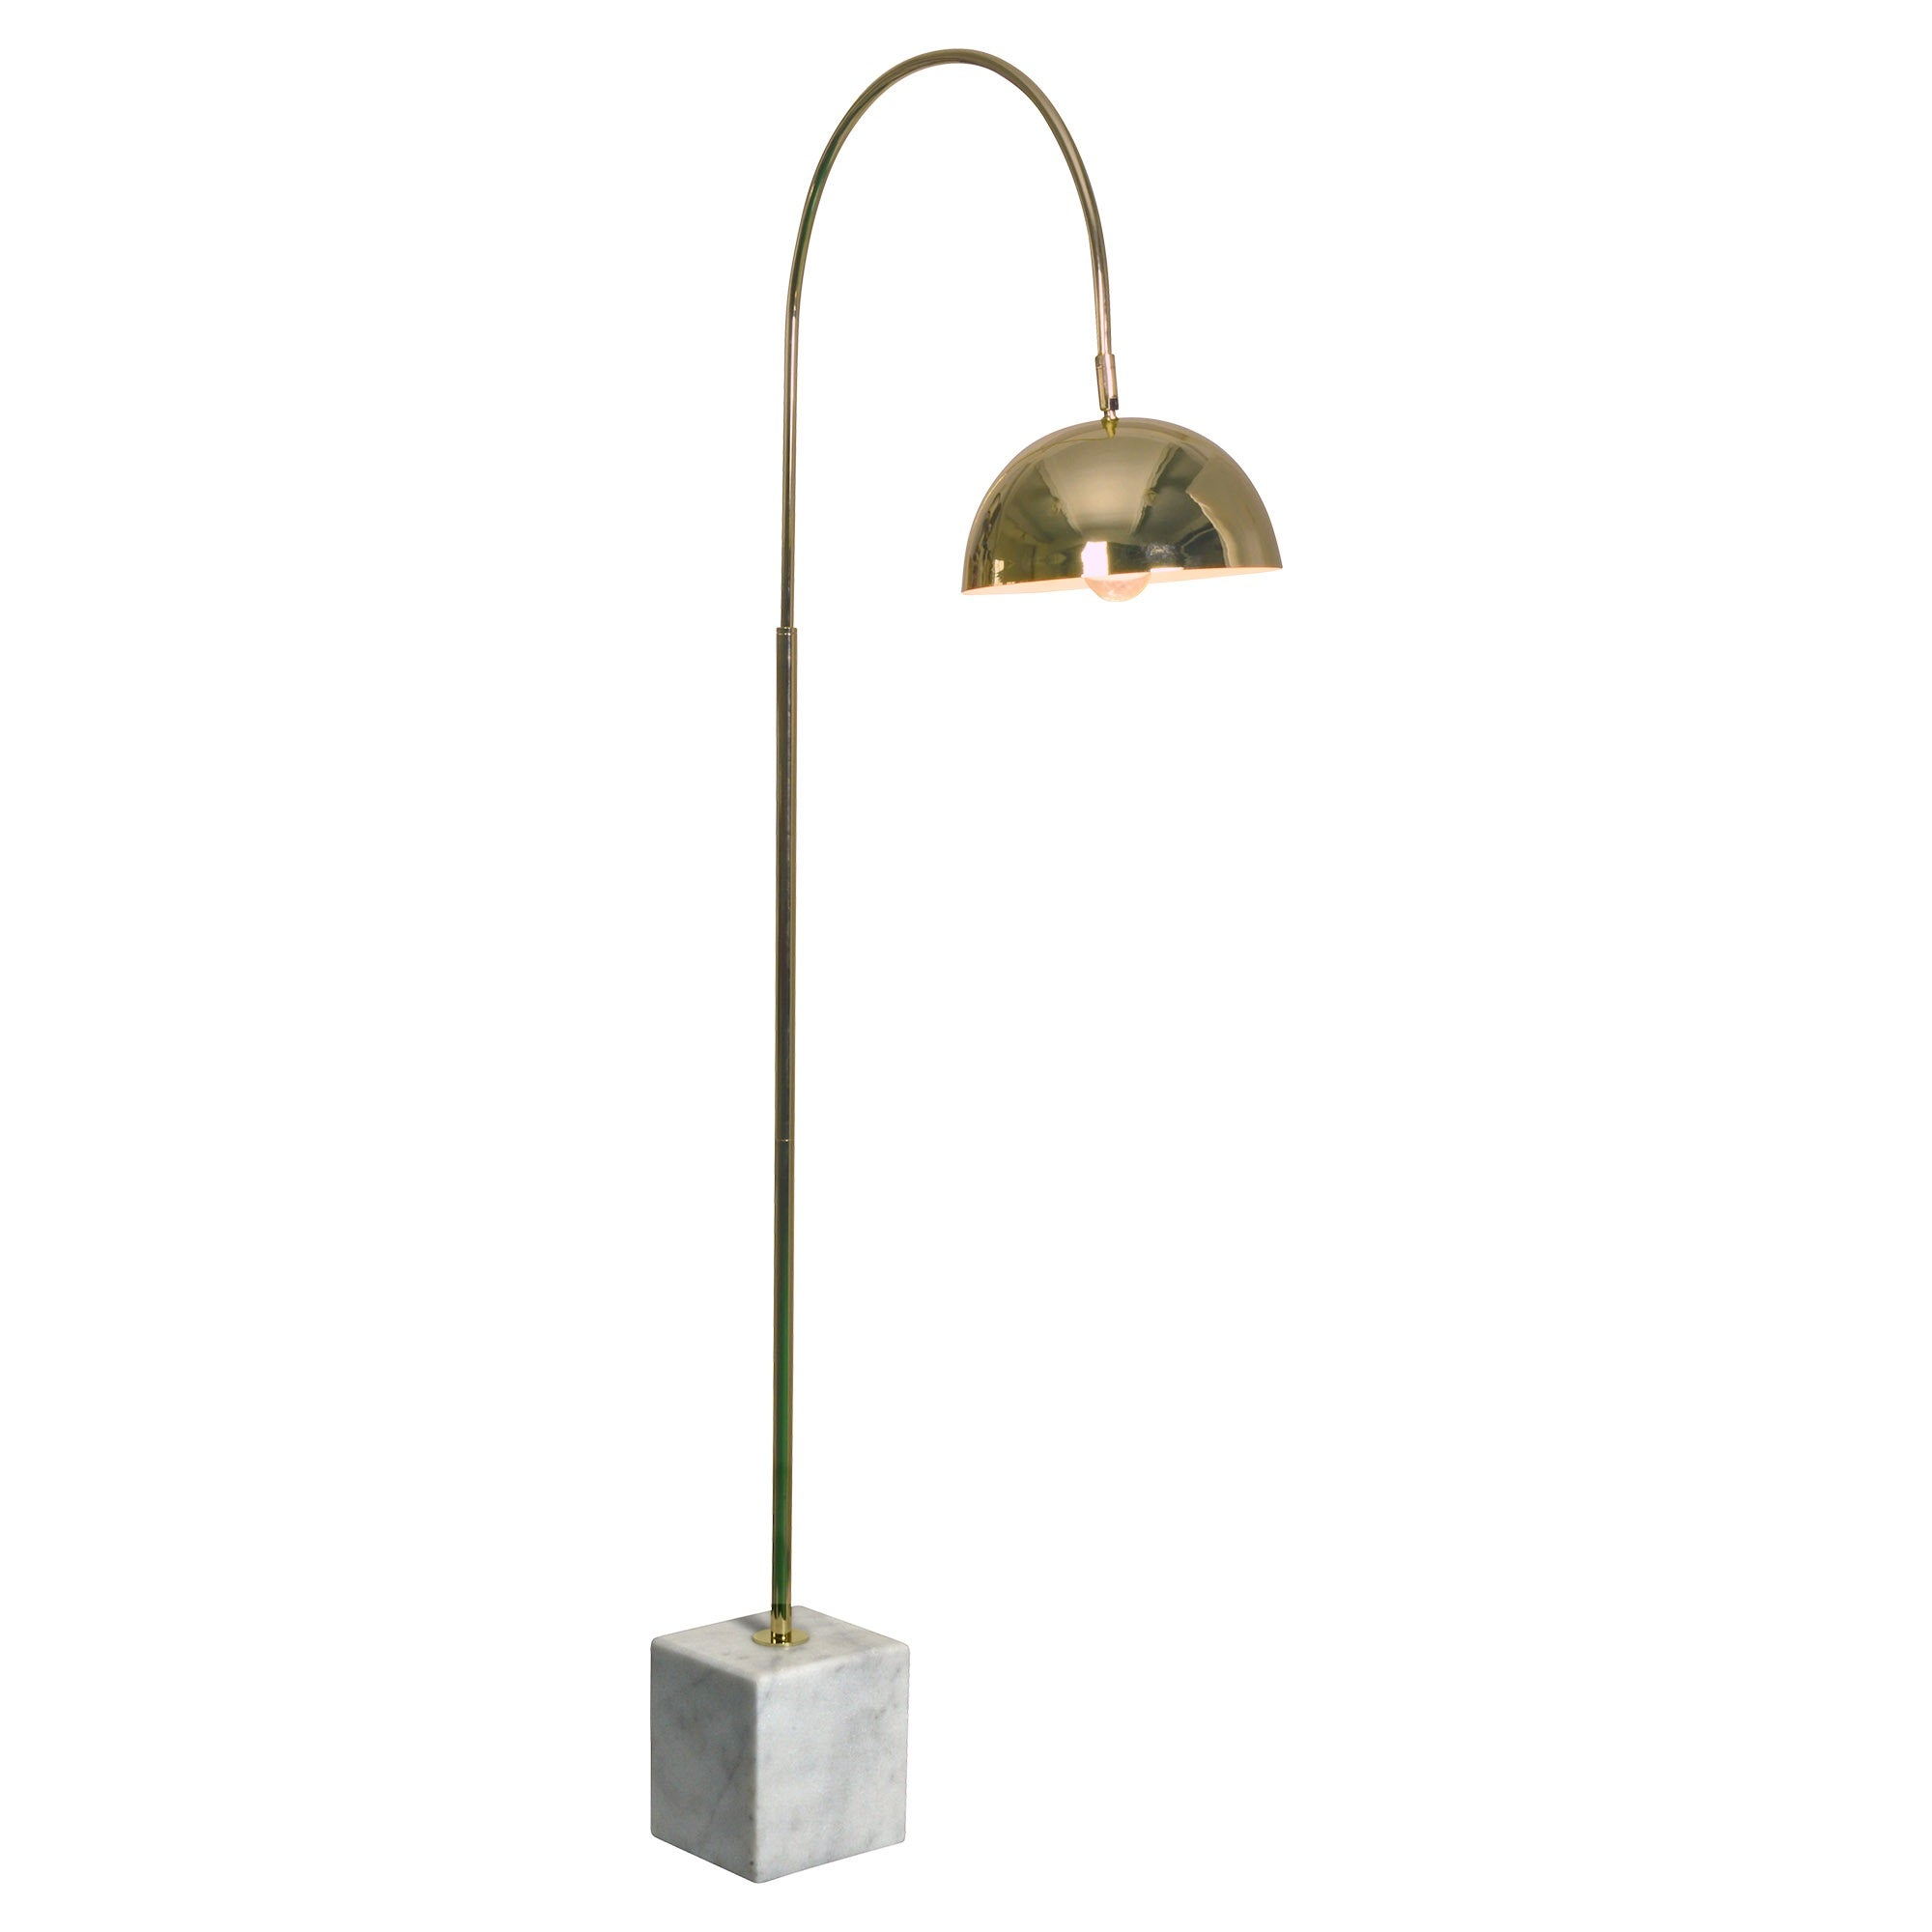 Valdosta Floor Lamp